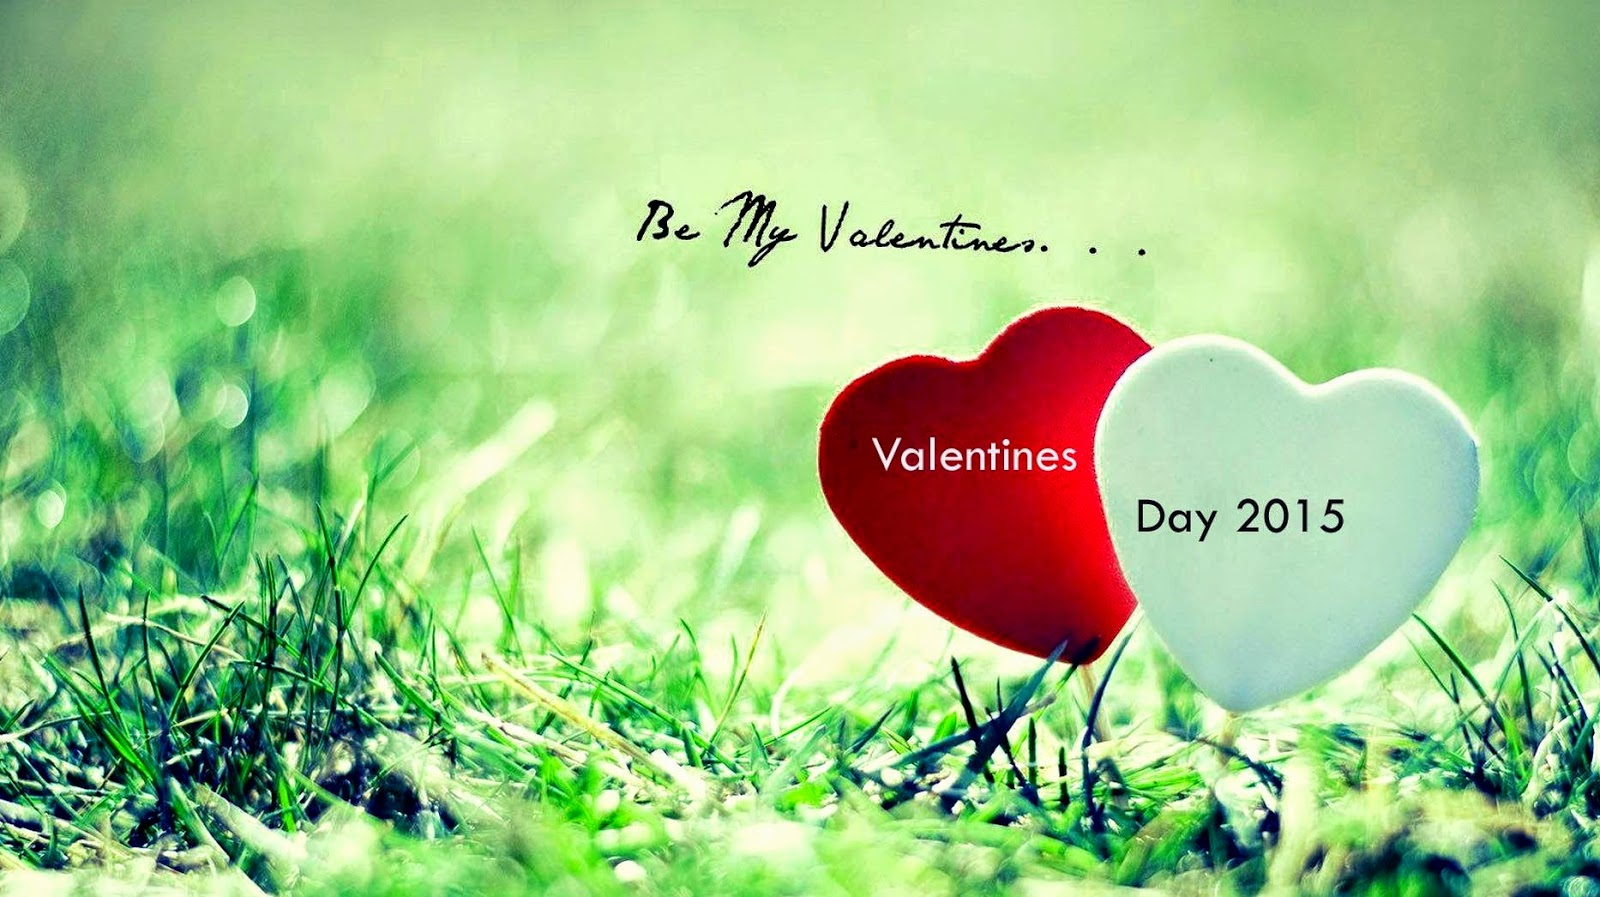 Must see Wallpaper Love Valentine Day - Valentines-Day-2015-Hd-wallpaper-for-her  Pictures_996735.jpg